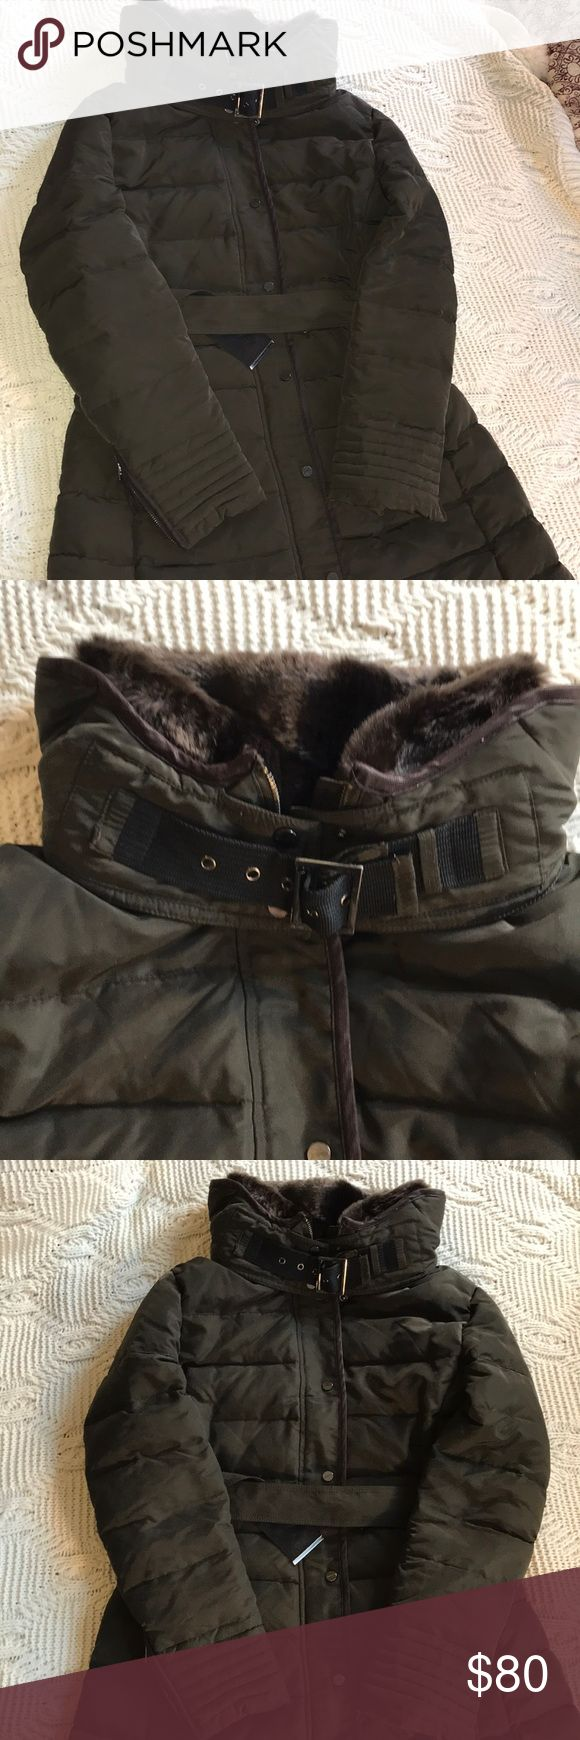 CLEARANCE!!! Zara green parka w/ fur and leather Beautiful dark green ZARA parka with a brown fur lining around the neck, and brown leather accents. Perfect condition, worn probably 6-8 times, no flaws or signs of wear. This parka is SERIOUSLY warm, comparable to my heaviest Patagonia parka. Smoke and pet free home. Will consider any reasonable offers! I would love to keep this parka, but just don't have the room in our city condo! Zara Jackets & Coats Puffers